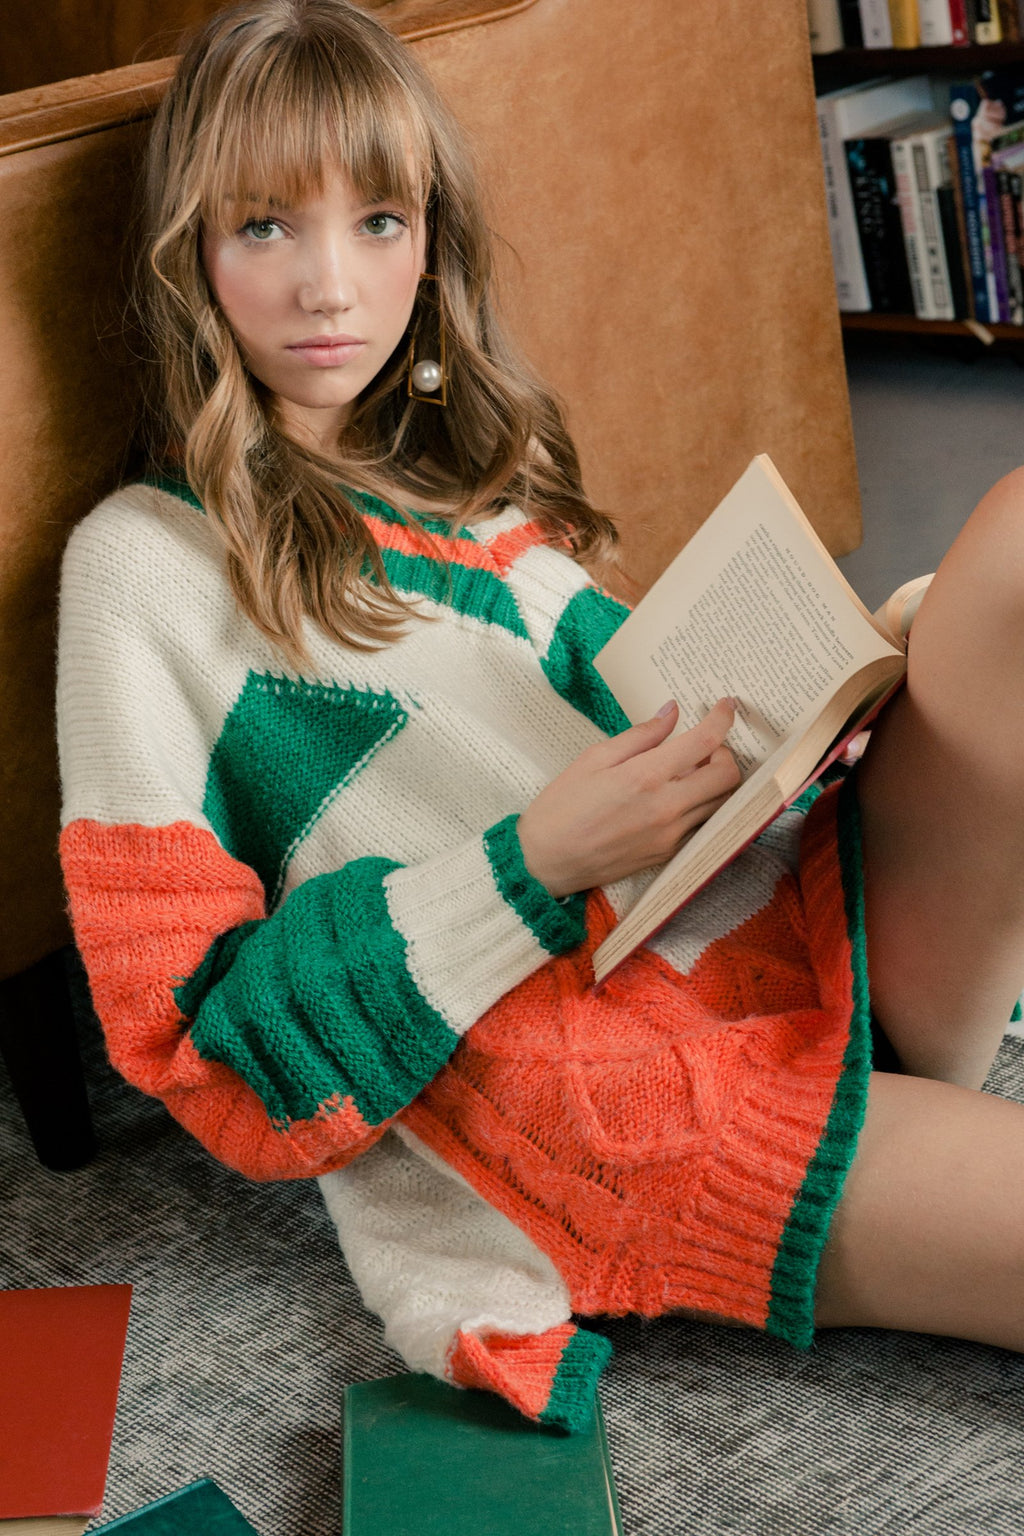 Miranda Sweater Orange in Knitwear by J.ING - an L.A based women's fashion line